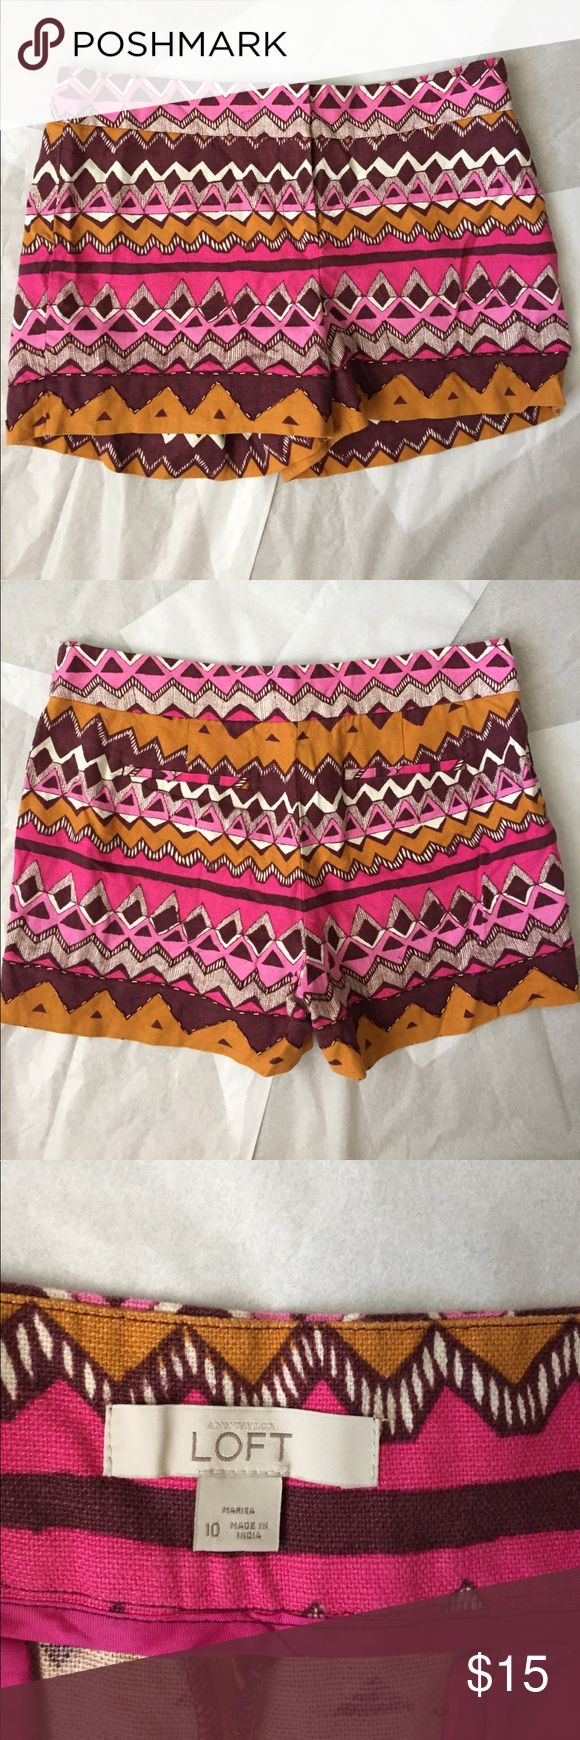 Loft Shorts! Ann Taylor Loft shorts! So fun with aztec print and beading at the bottom! Linen like material! Cotton and polyester! Good used condition! a few missing beads in the crouch area that no one see. Pricing accordingly! Still in overall great condition! Inseam 3.5 inches. LOFT Shorts